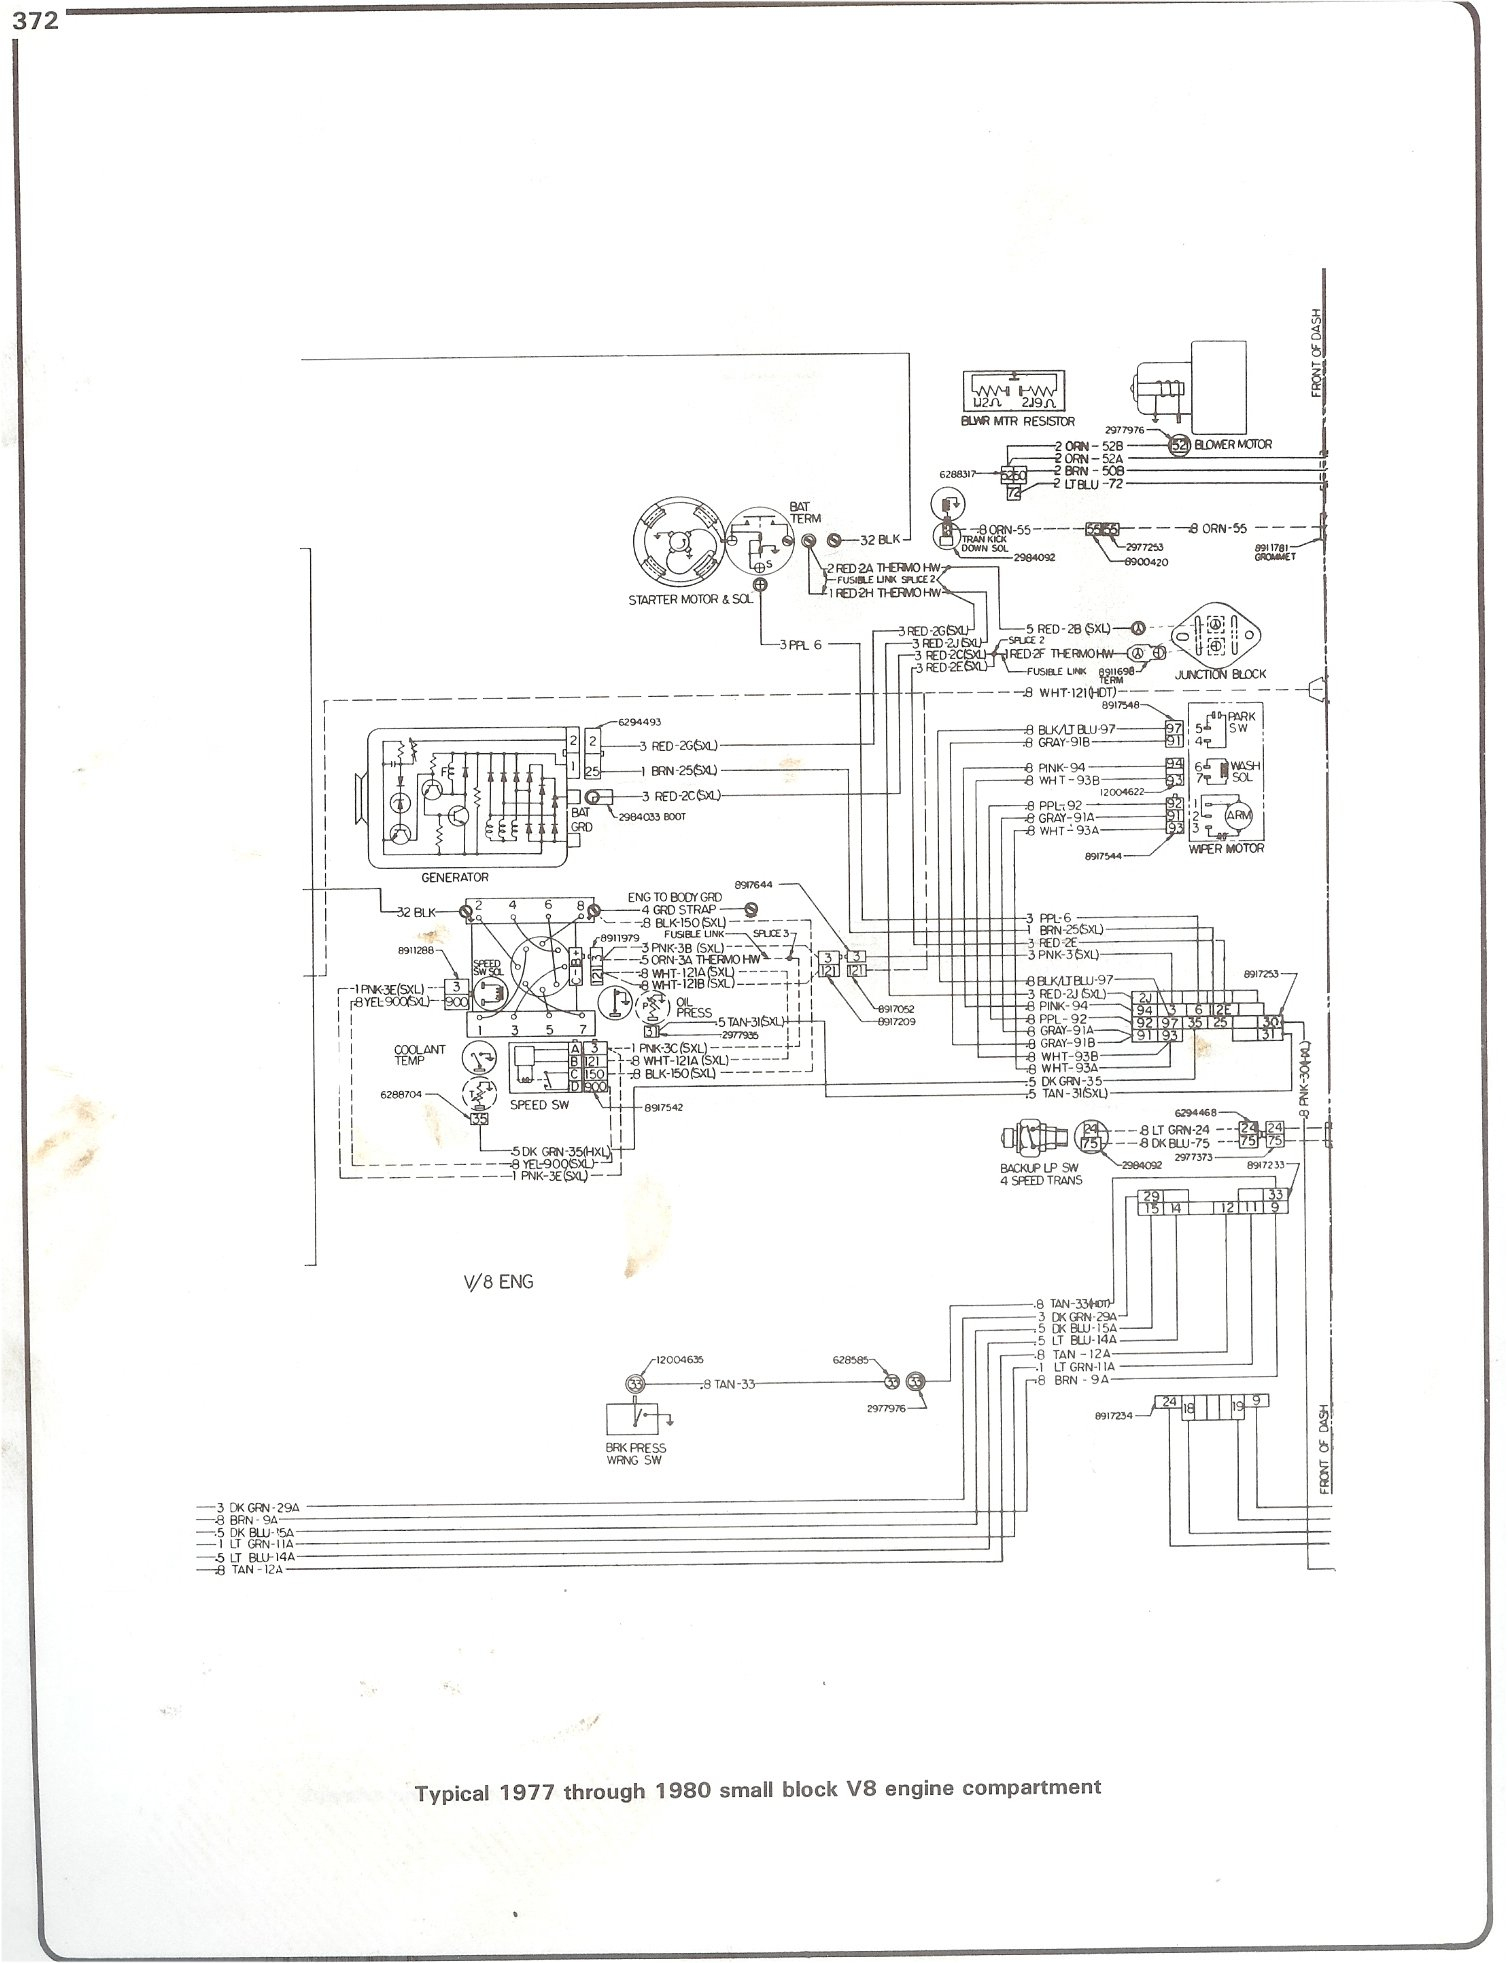 Complete 73-87 Wiring Diagrams - 1988 Chevy Truck Wiring Diagram